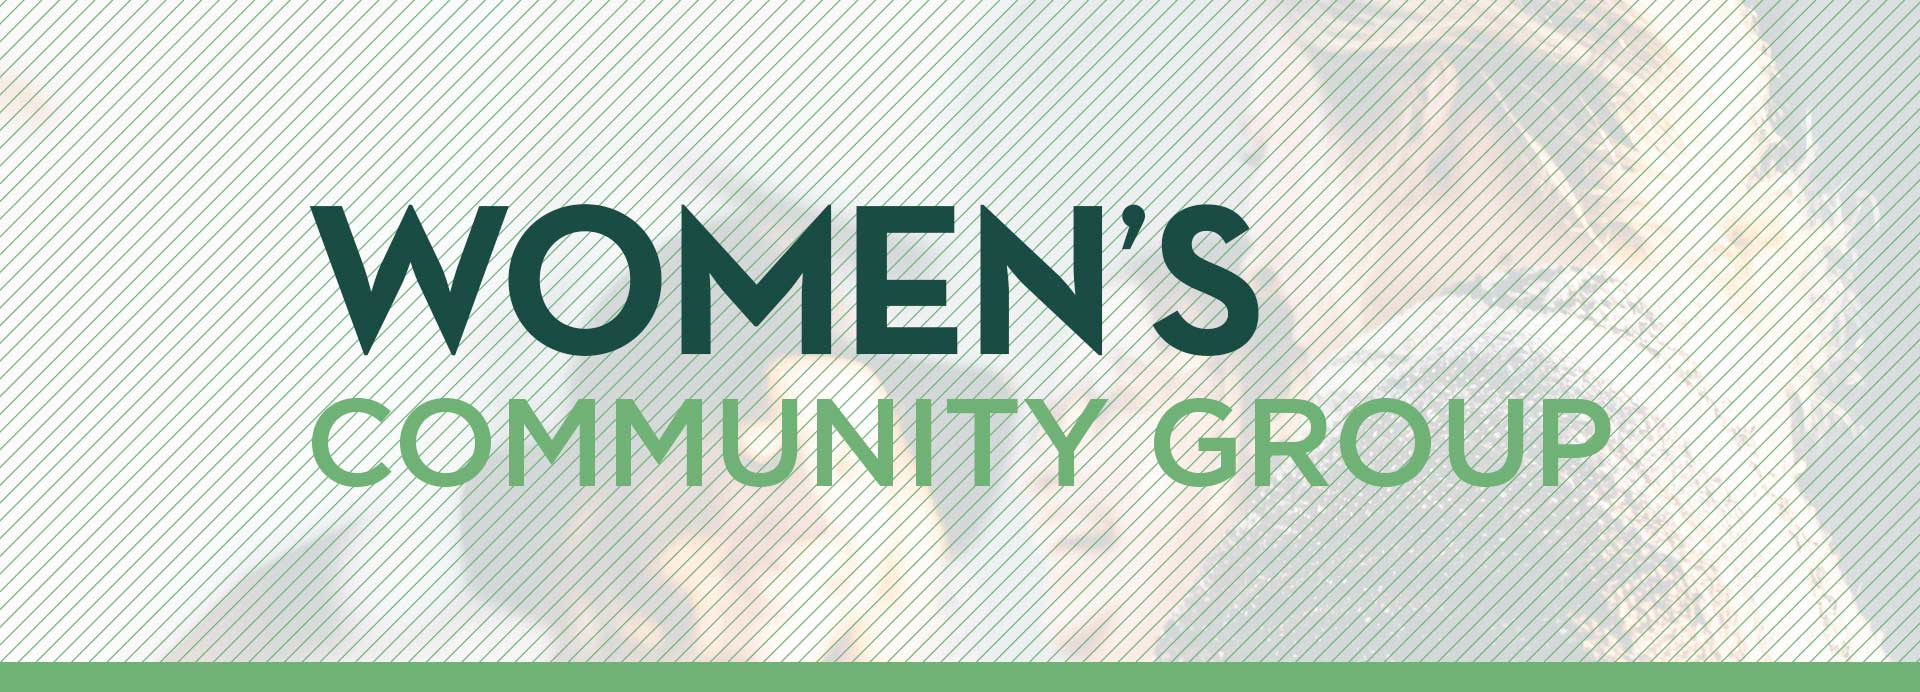 Women'sCommGroup_1920x692.jpg